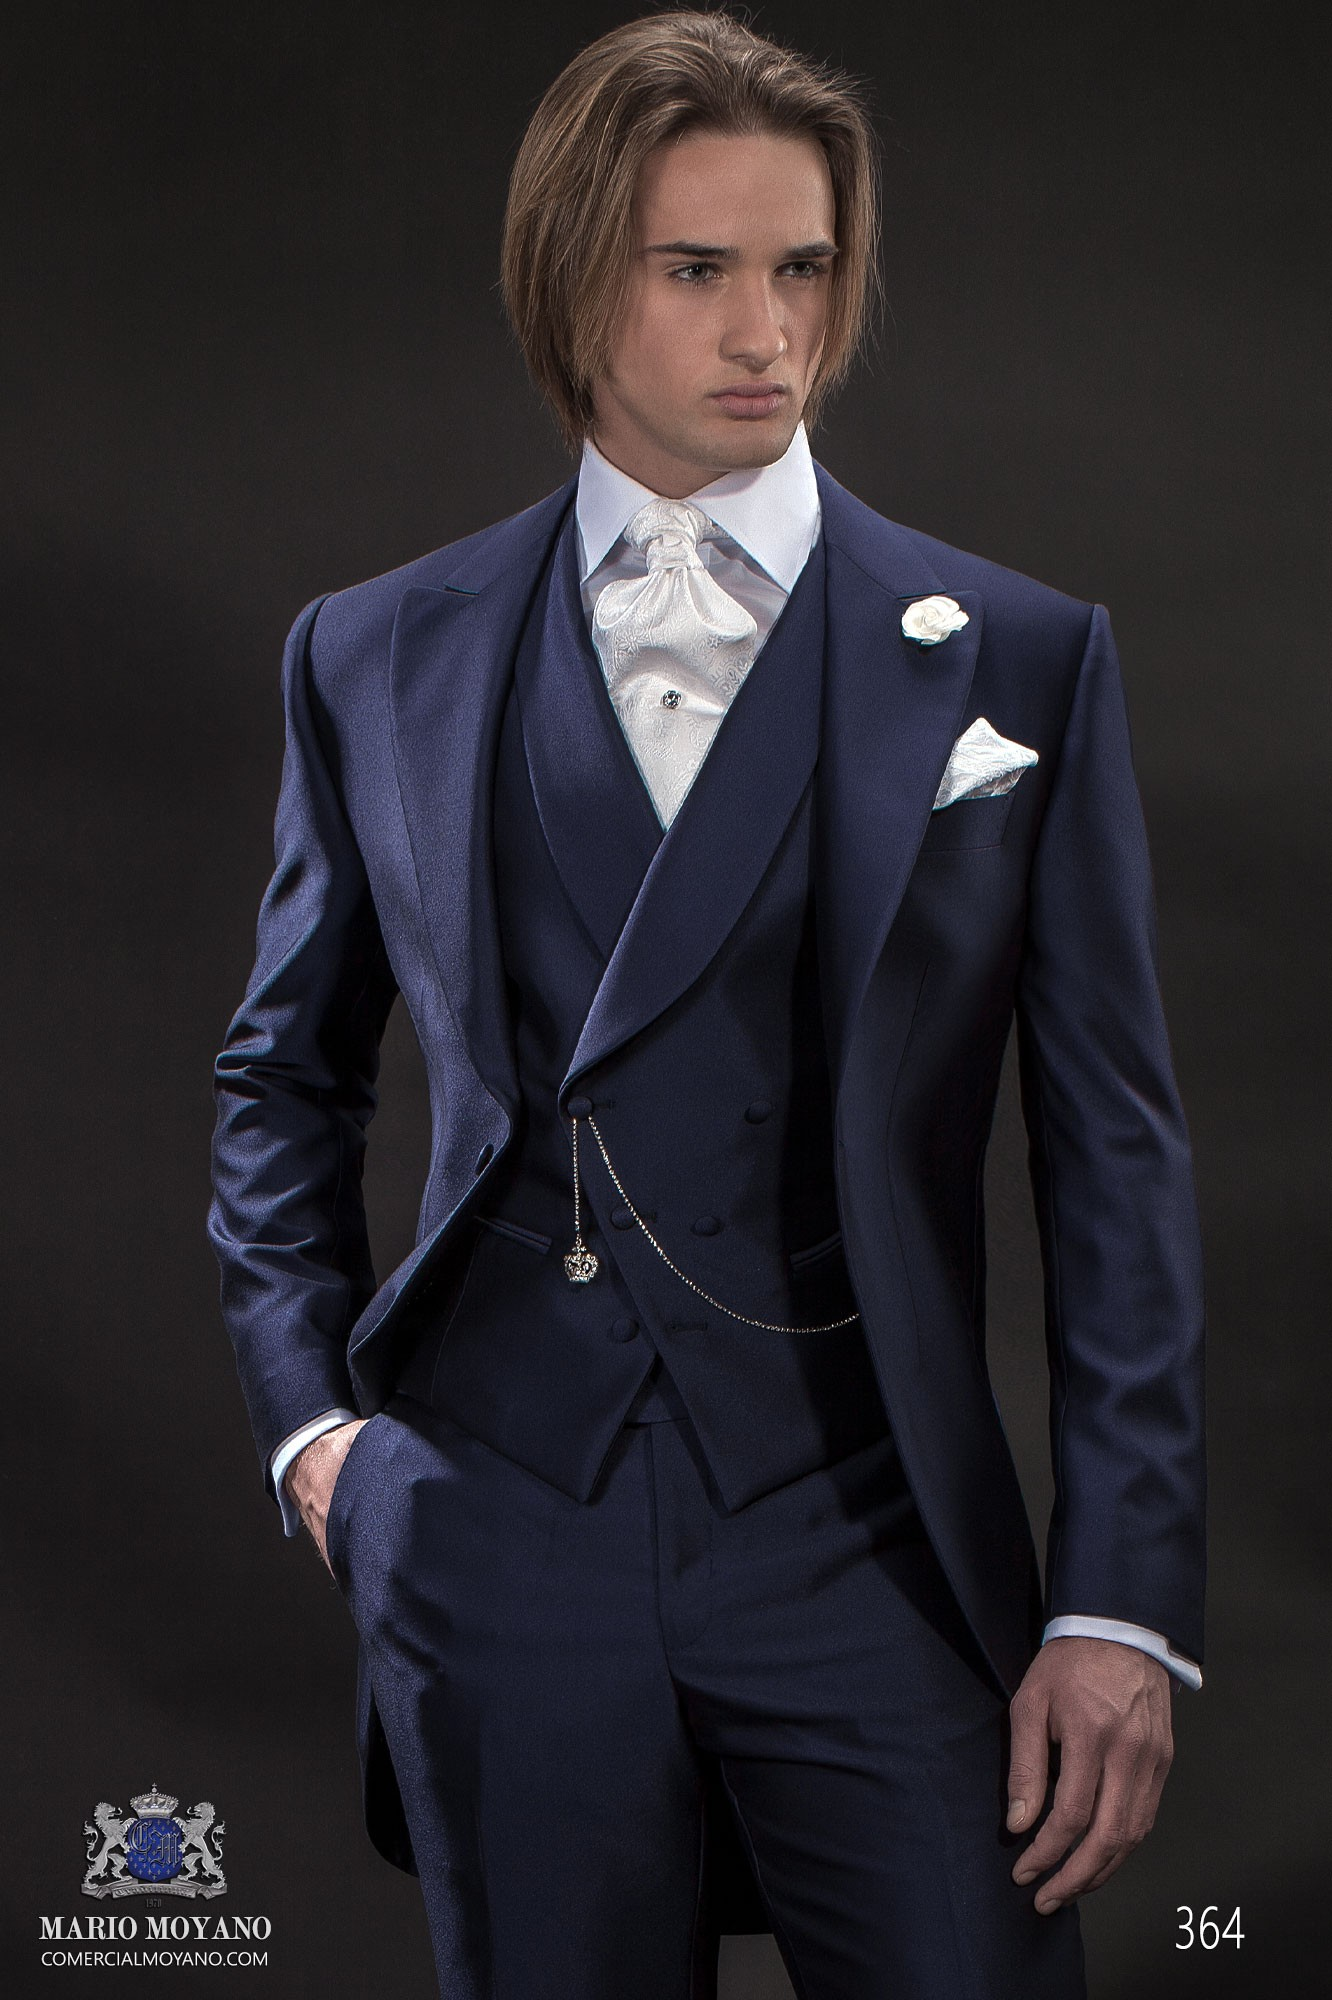 Italian bespoke wedding suit, blue short frock fil a fil, style 364 Ottavio Nuccio Gala, 2015 Gentleman collection.